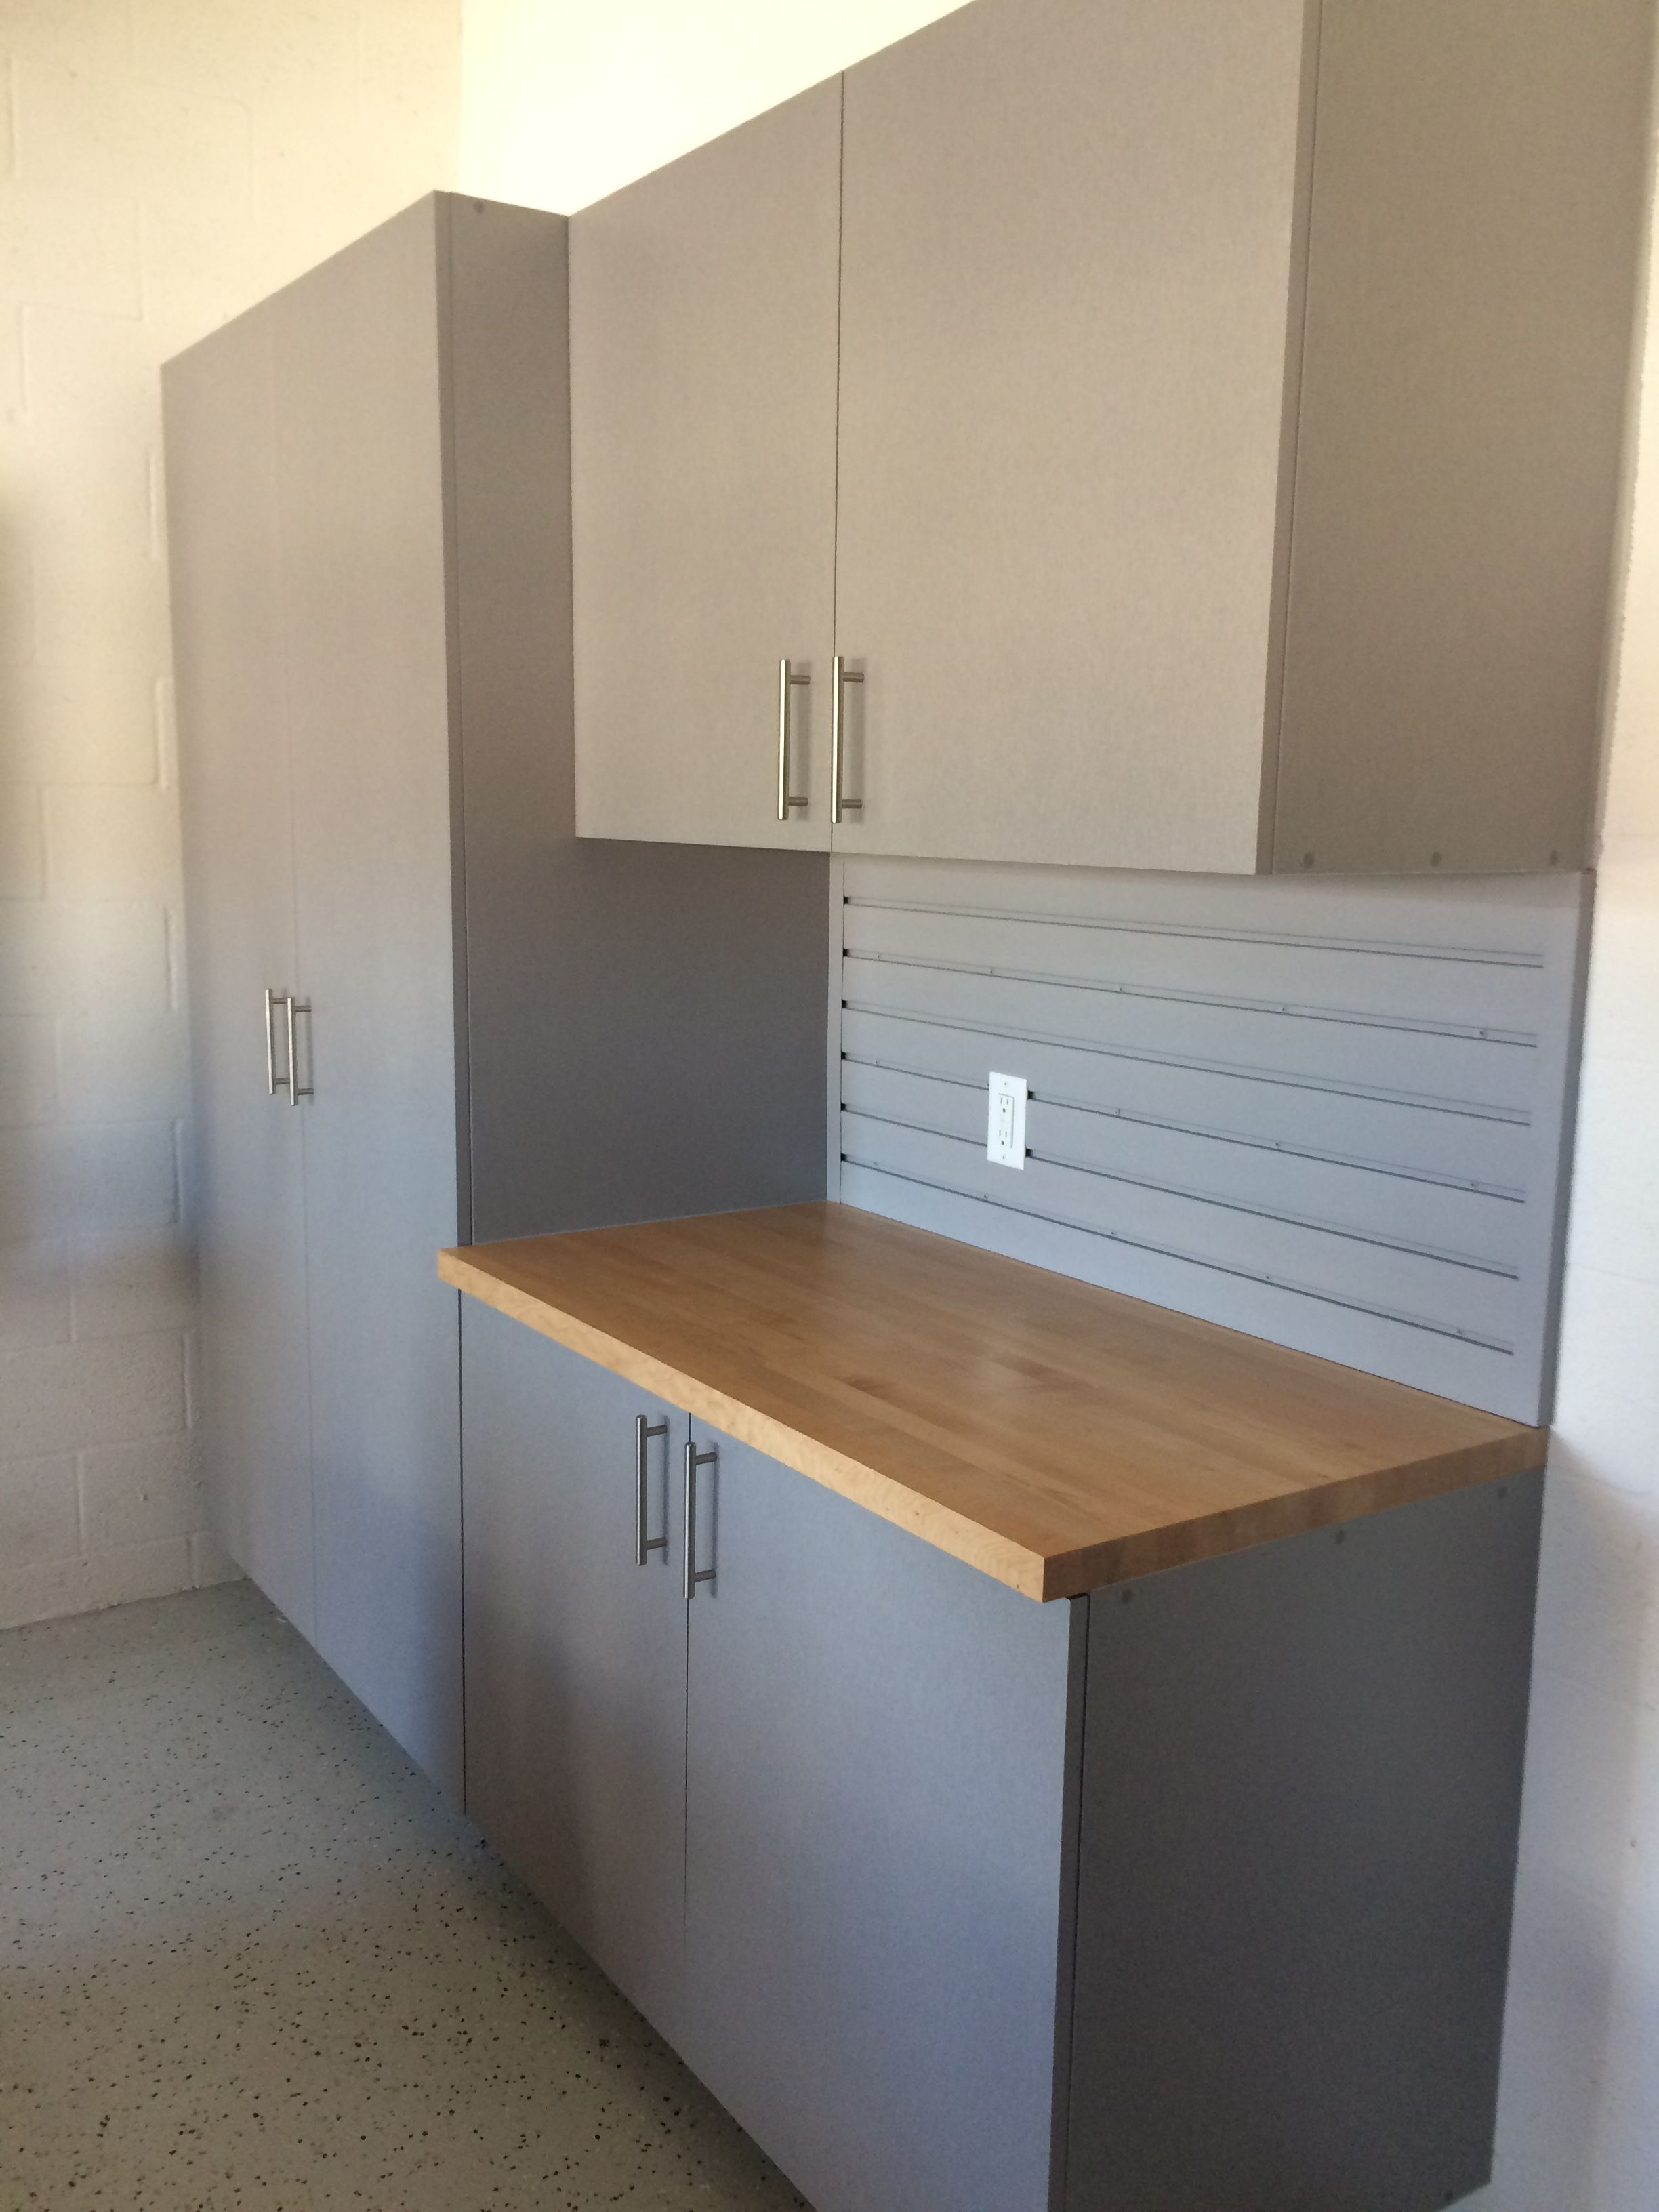 Silver Frost Garage Cabinets Butcher Block Top In Sarasota Florida Modern Garage Custom Cabinetry Home Decor